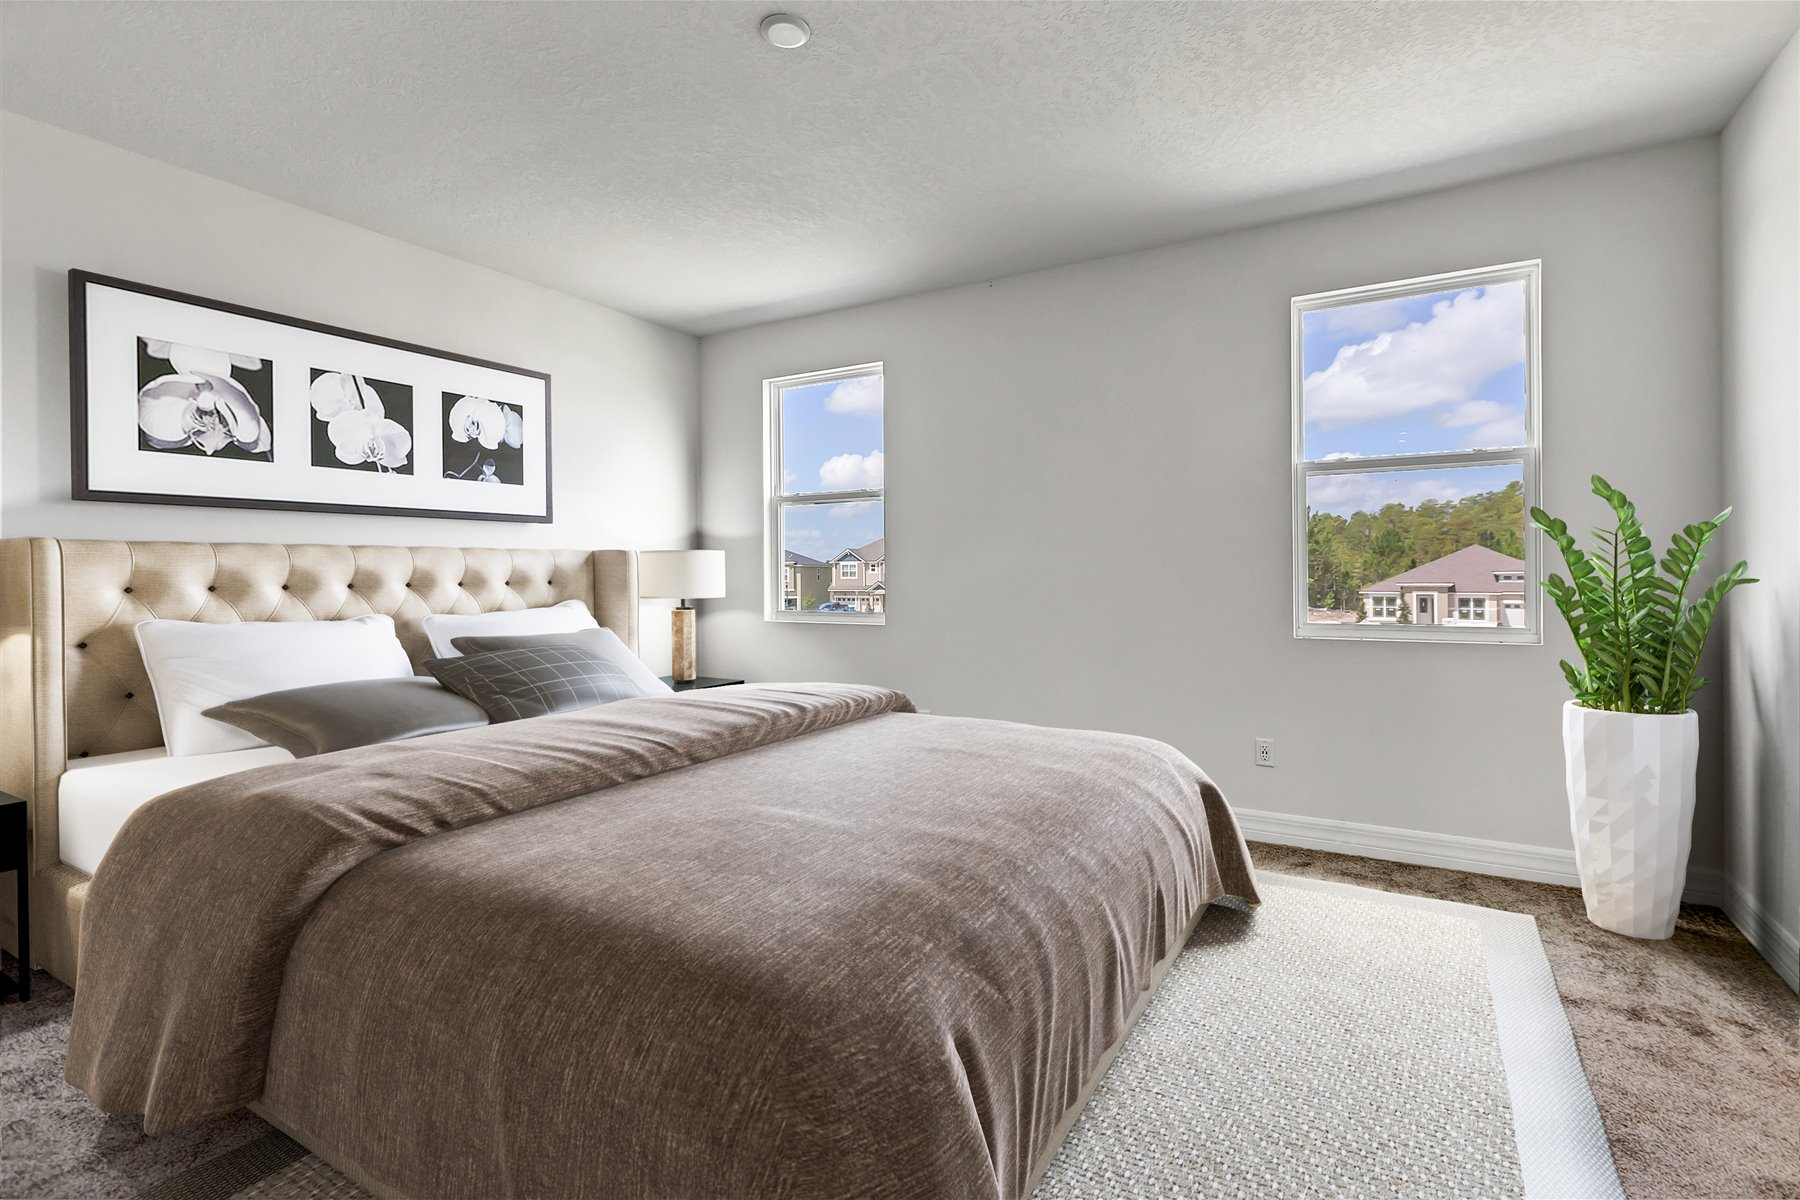 Newport Plan Bedroom at Meridian Parks in Orlando Florida by Mattamy Homes